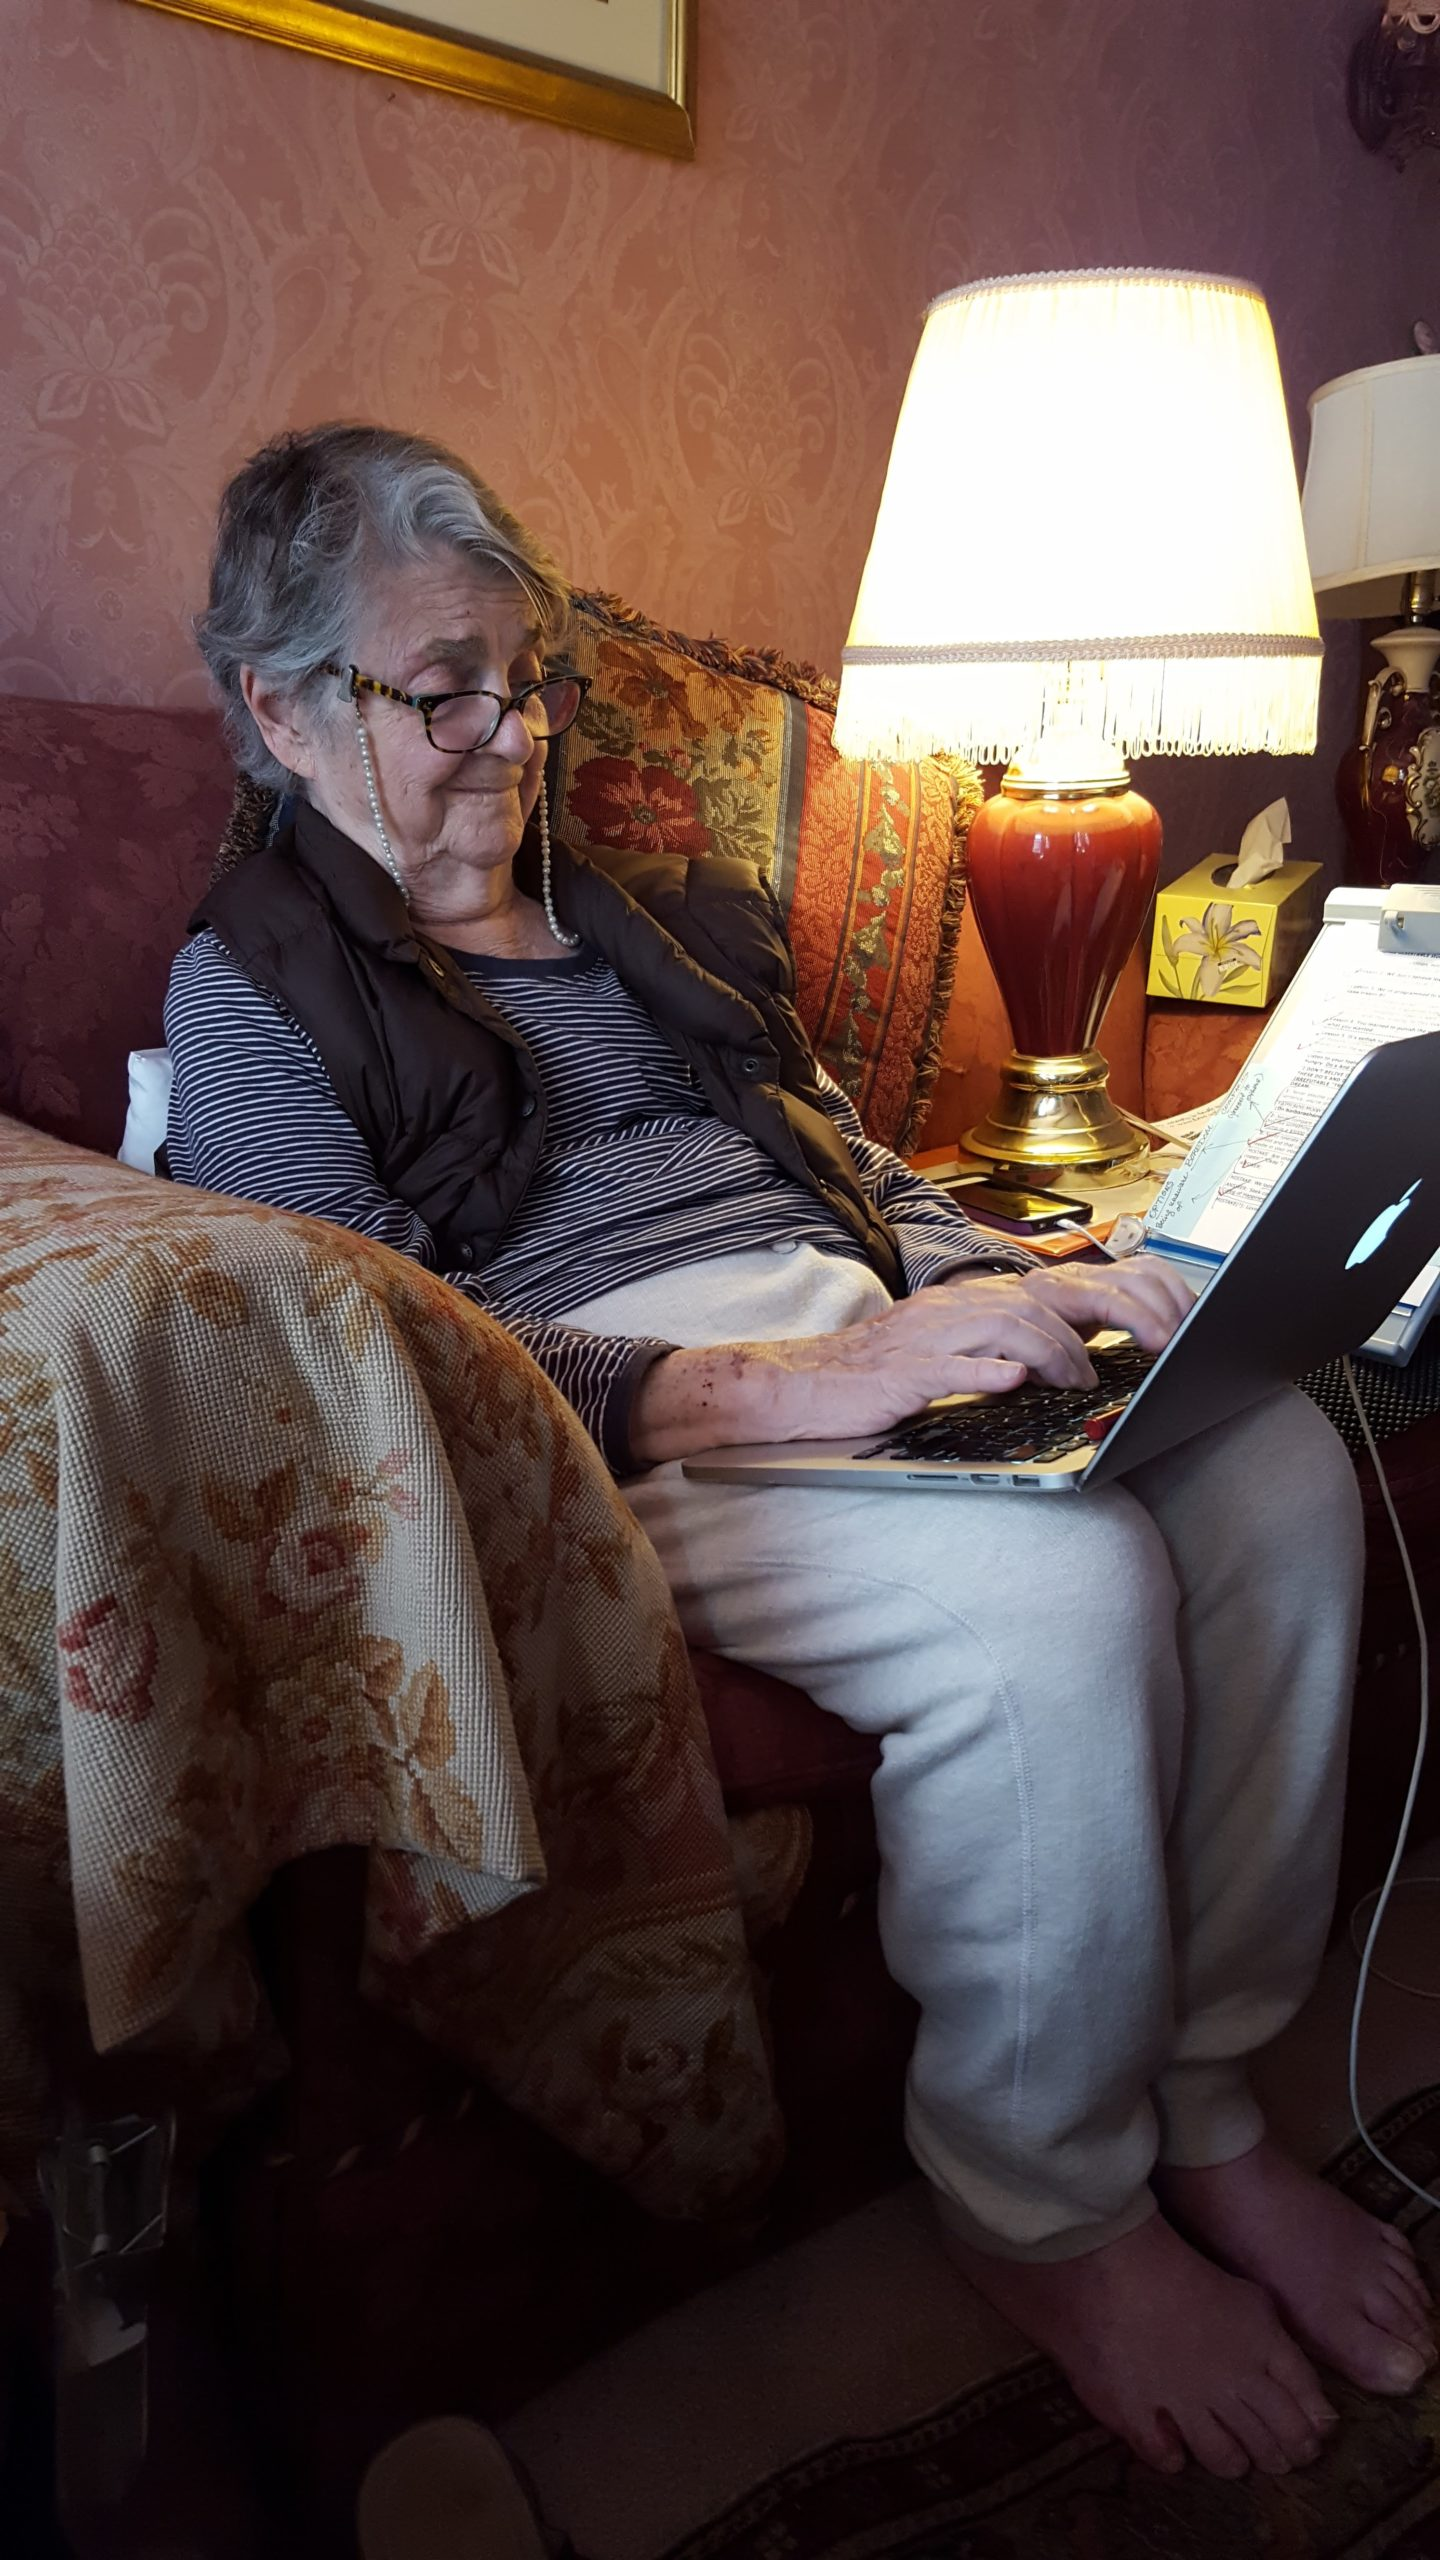 Barbara Sher, editing her Survival Guide for Dreamers in her living room